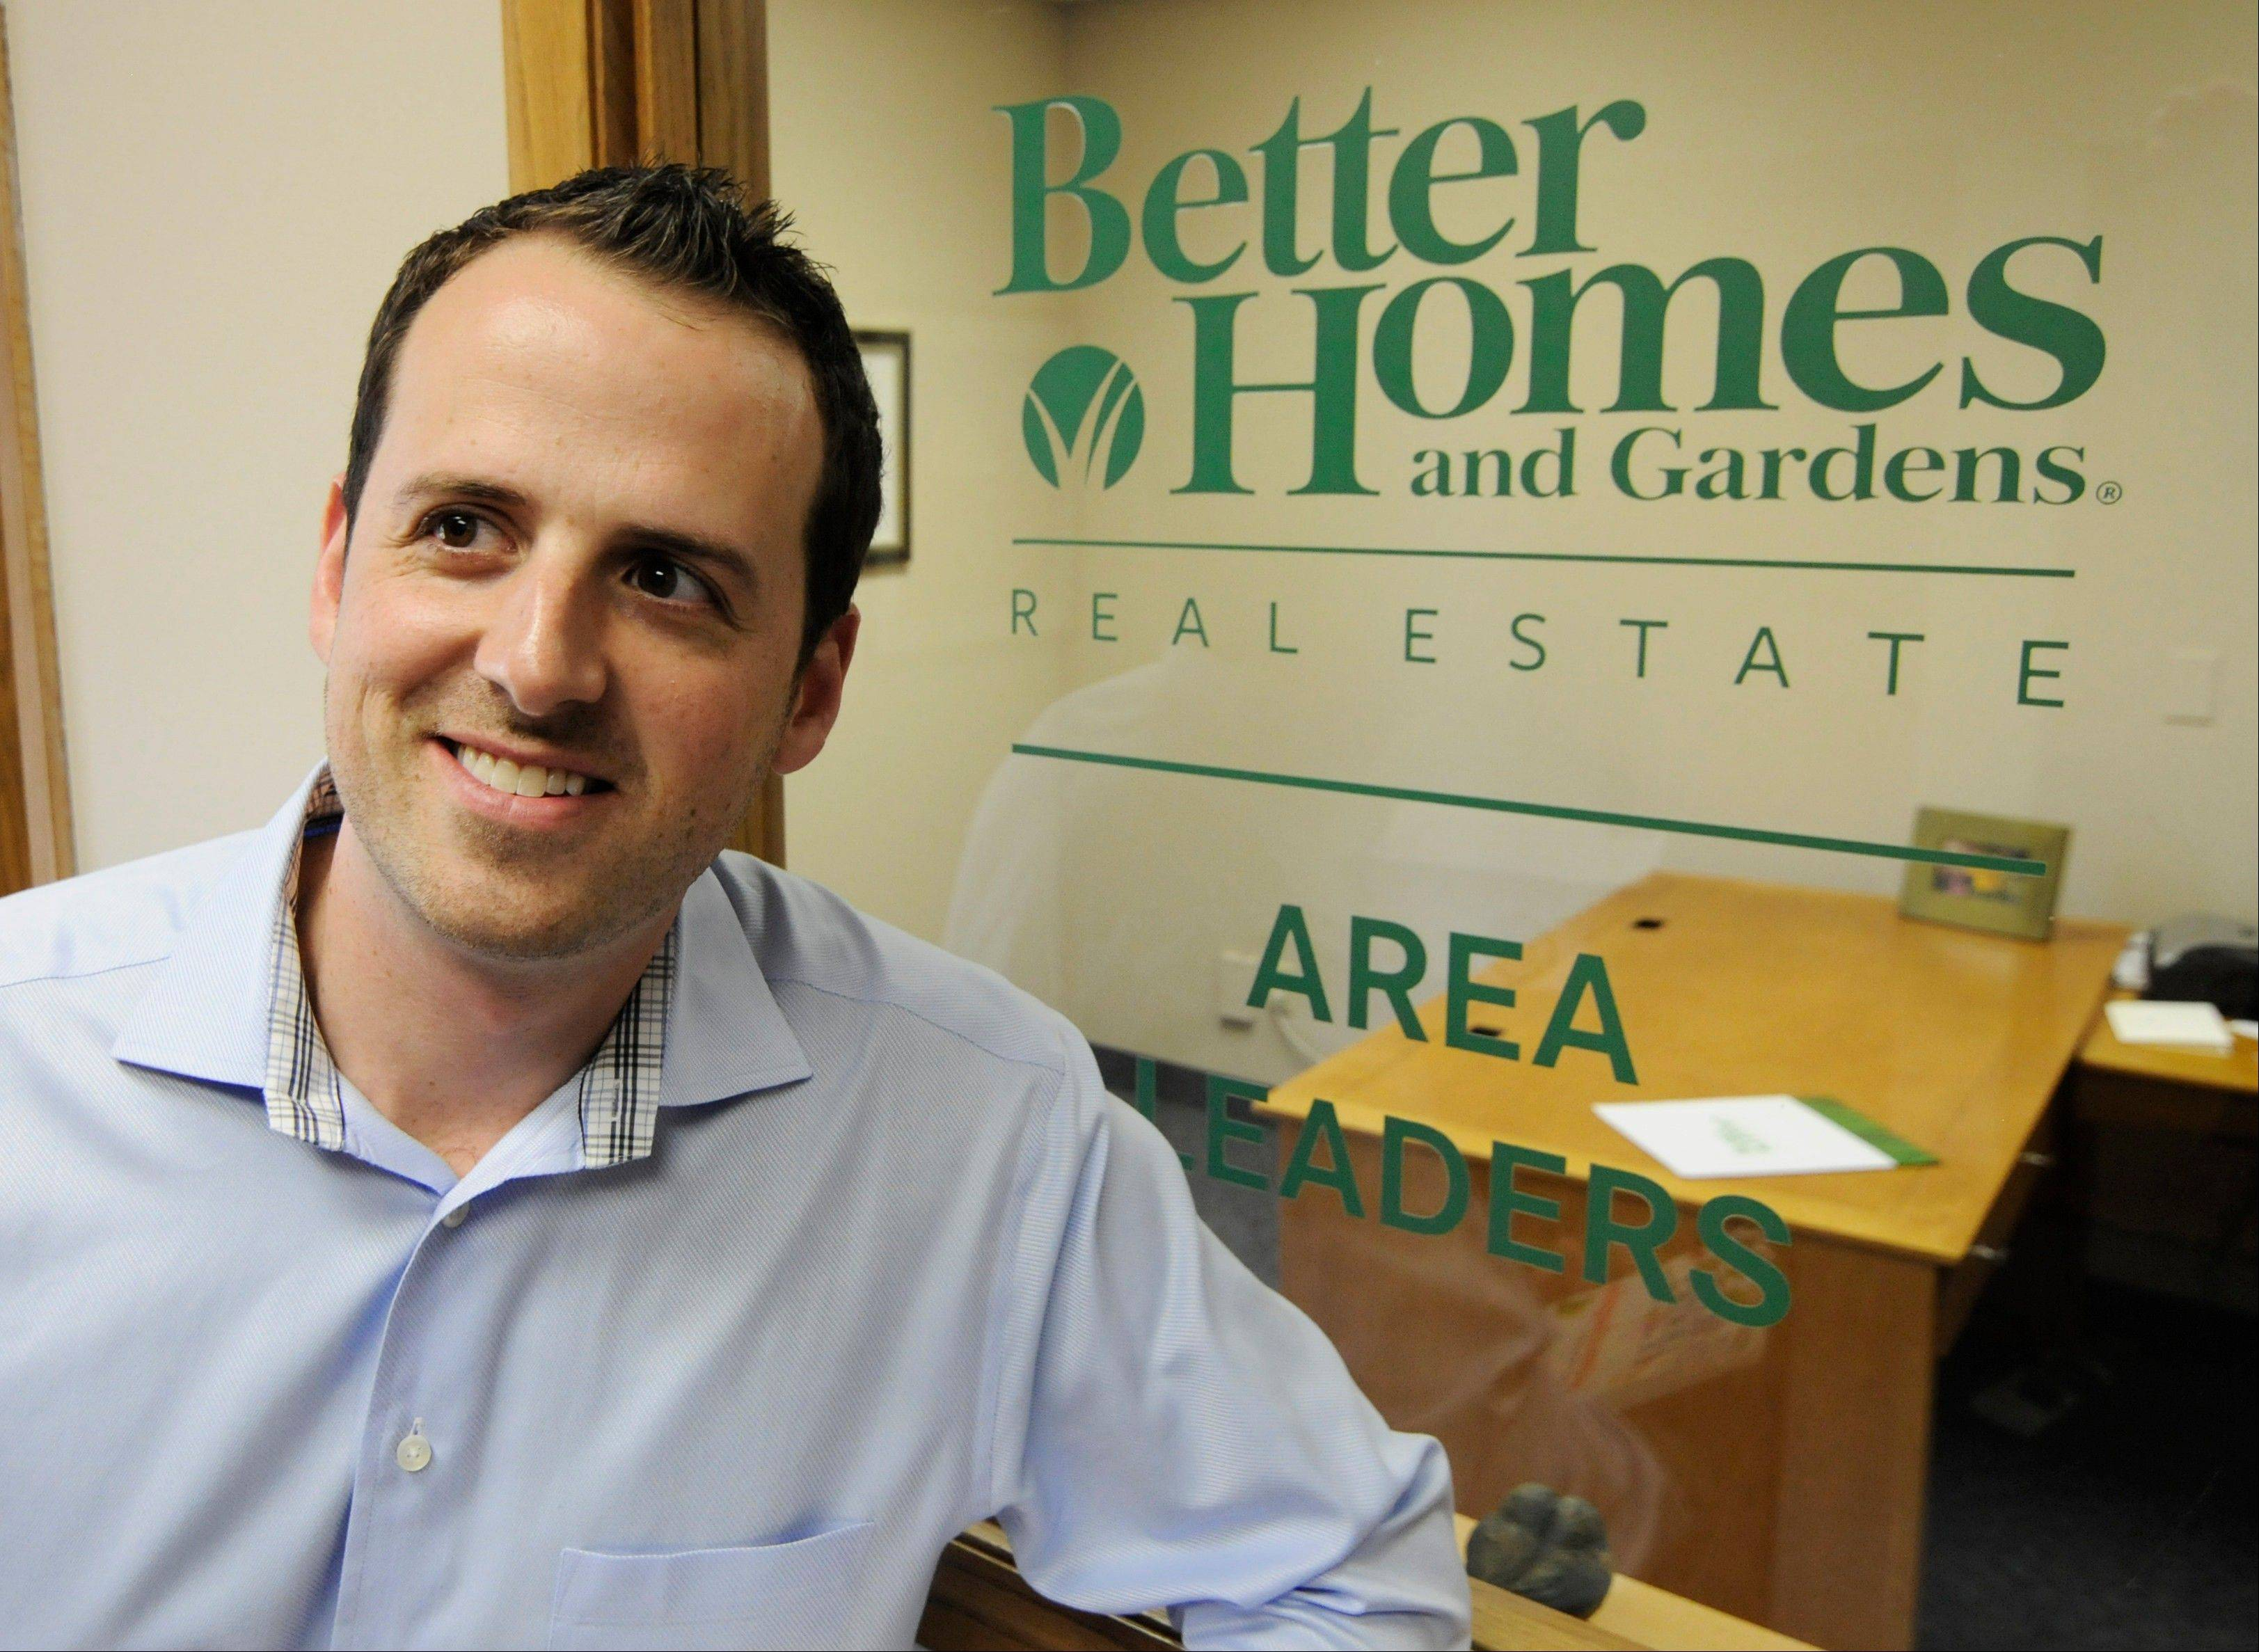 Andy Asbury, owner of Better Homes & Gardens Real Estate Area Lenders, is shown at his office in Edina, Minn. Asbury, who has the business to support more agents, hired a full-time employee just last Friday. Asbury said his sales are up 25 percent from a year ago and he�s expecting them to rise further next year.